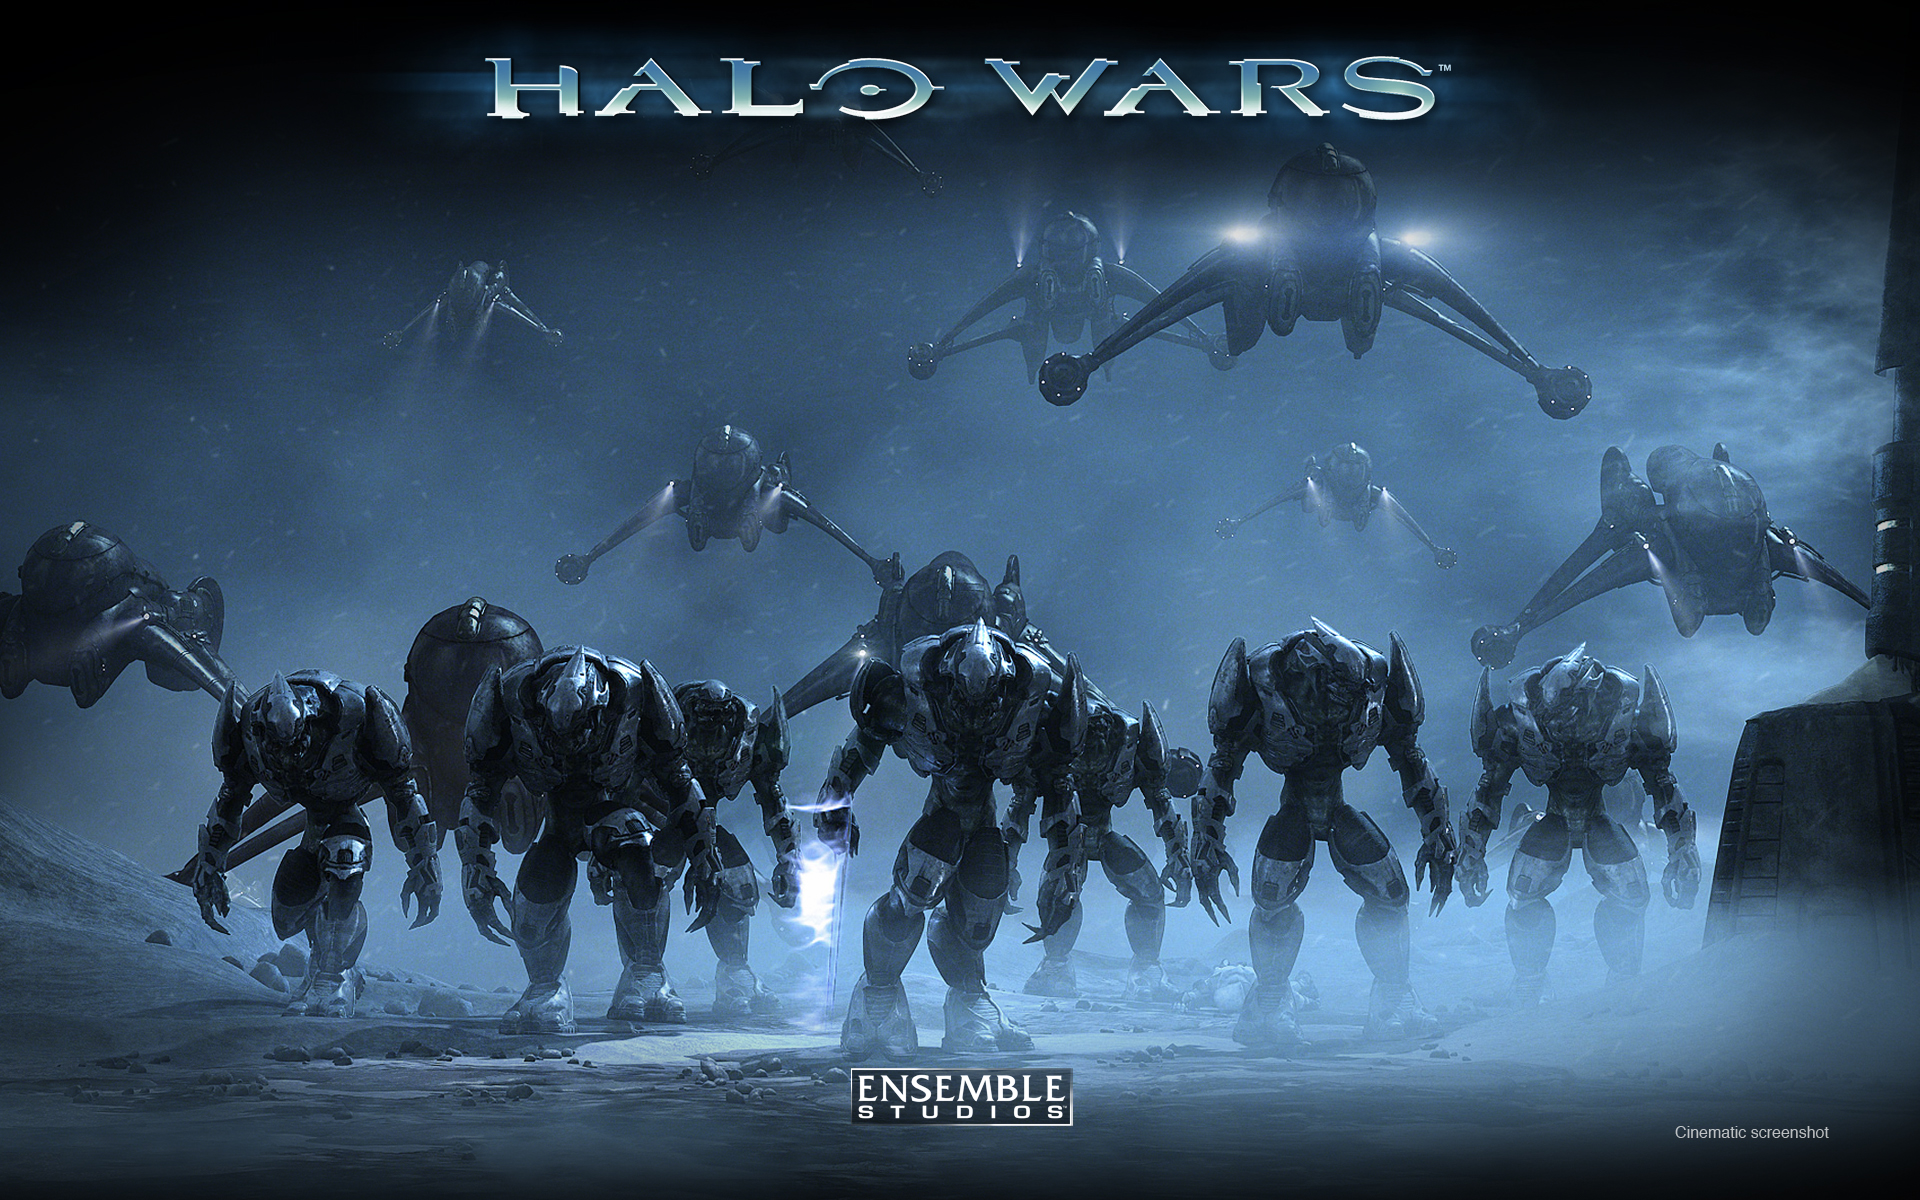 Try opening images4.wikia.nocookie.net/halo/images/0/0b/Halowars_elites.jpg